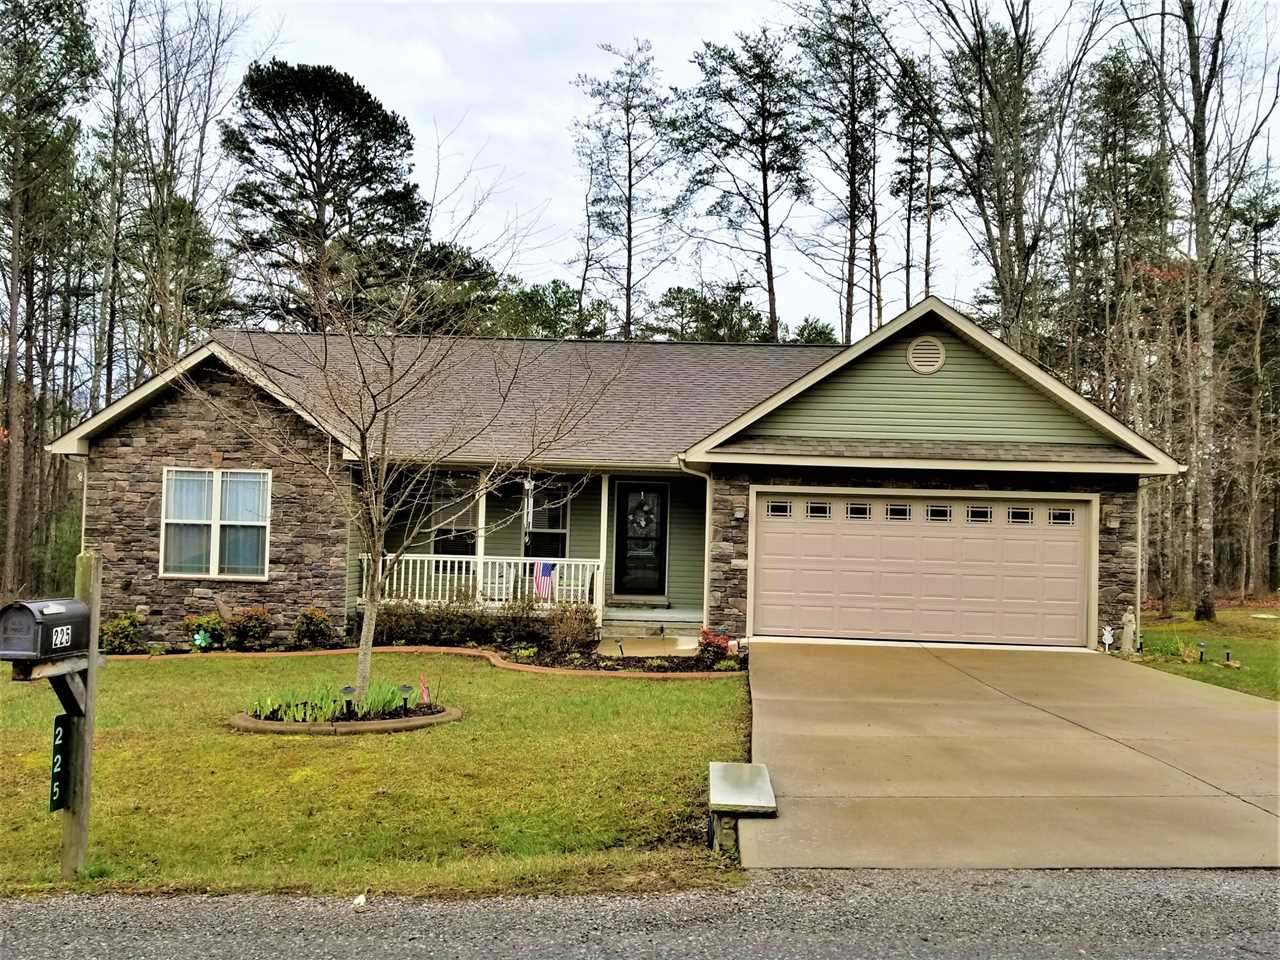 225 Thrushwood Dr Fairfield Glade TN 38558 in Dorchester | MLS 1073061 - GreatLifeRE.com Photo 1